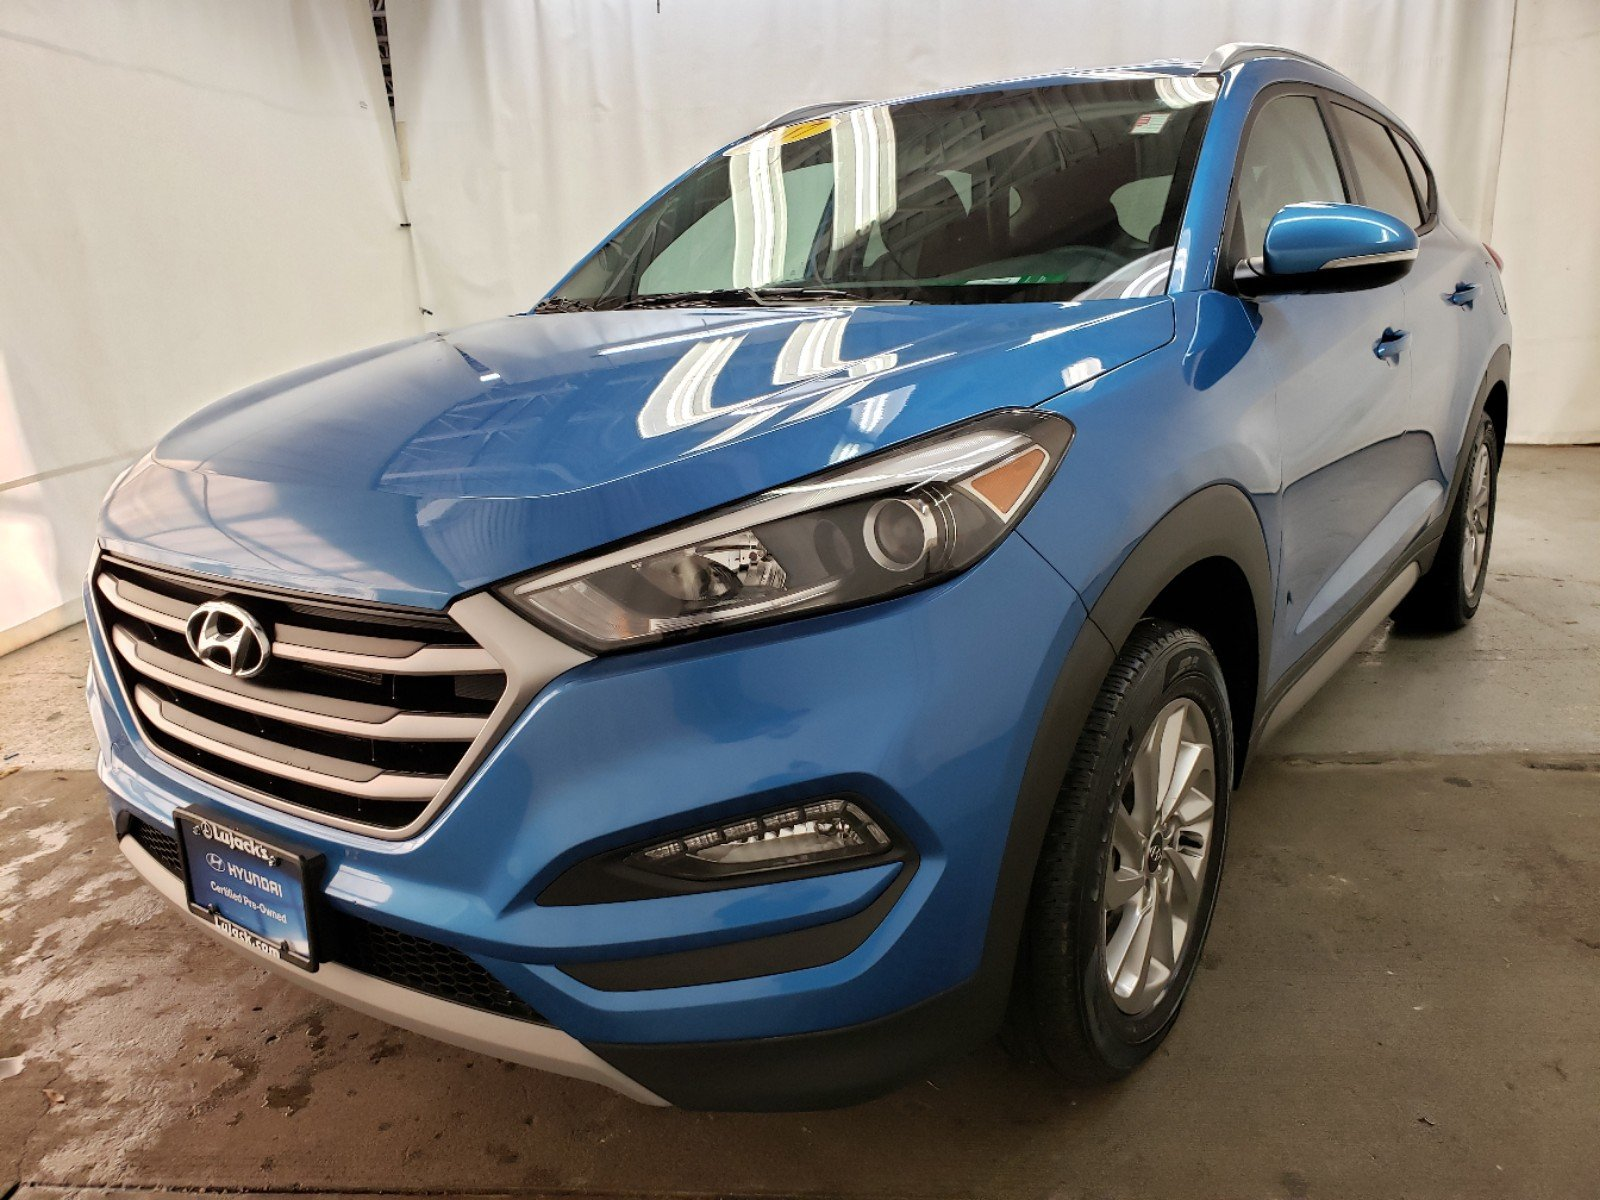 Certified Pre-Owned 2017 Hyundai Tucson Eco